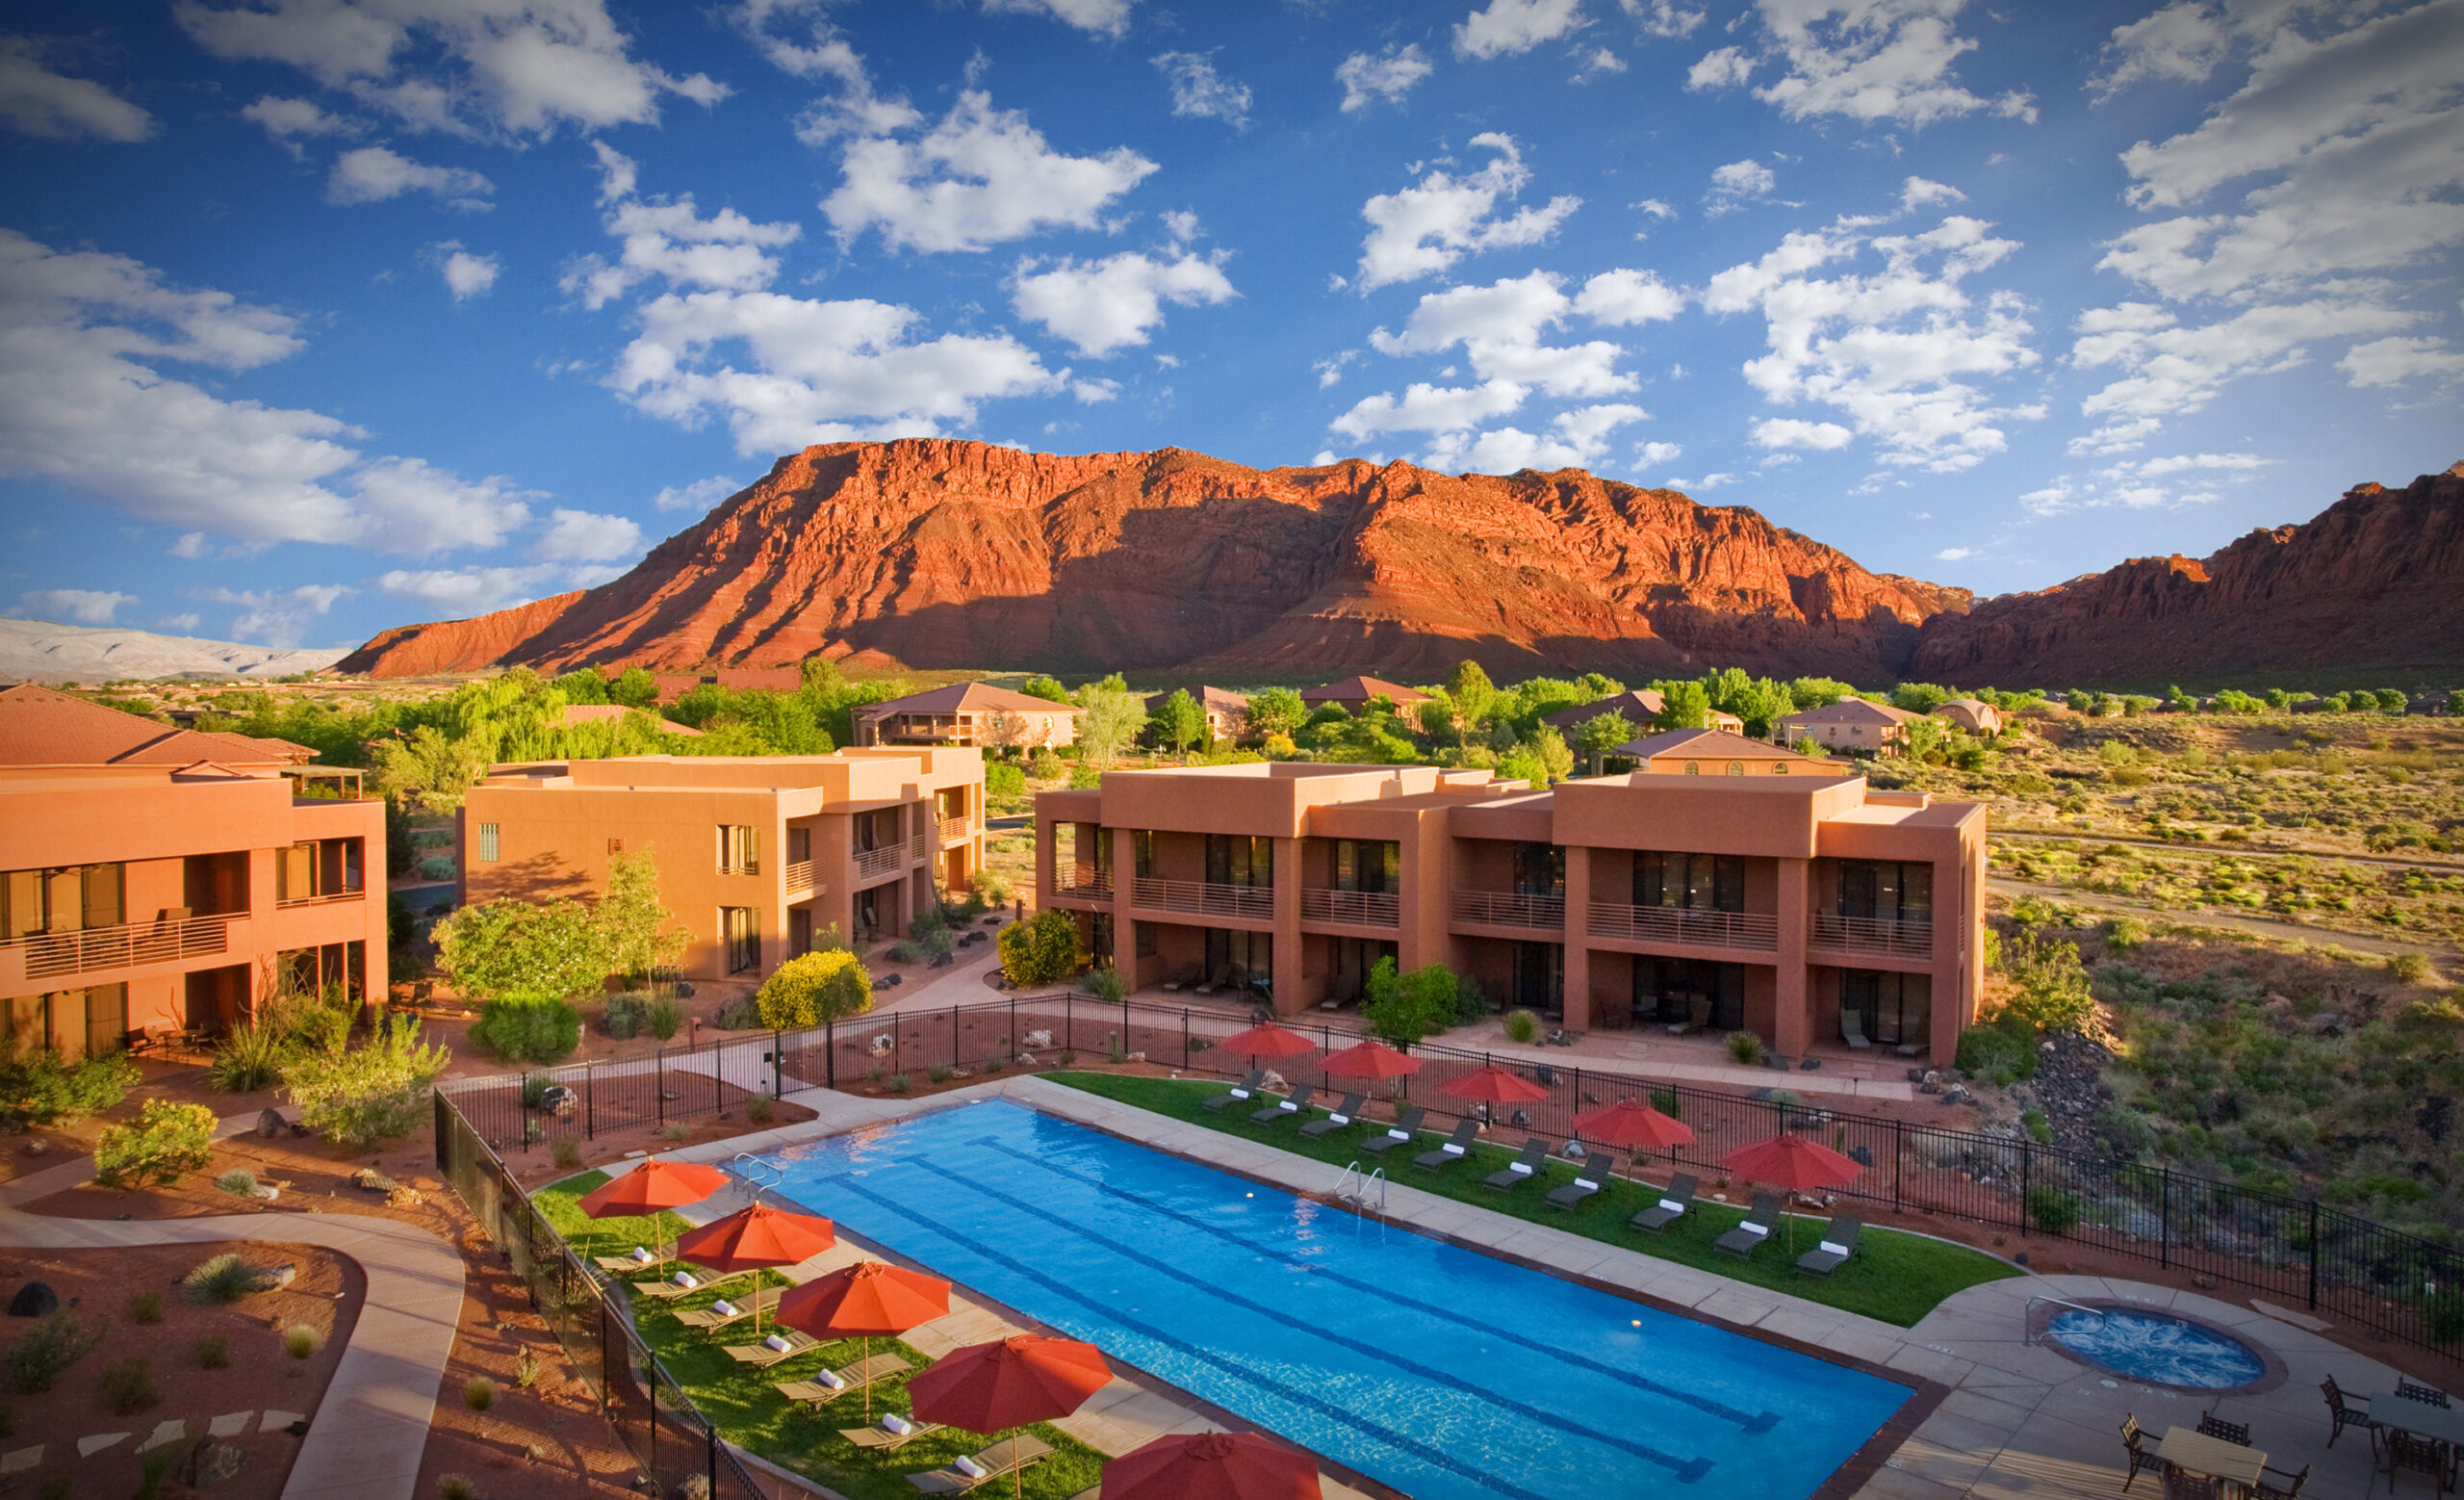 Active Getaway in Utah's Red Mountains